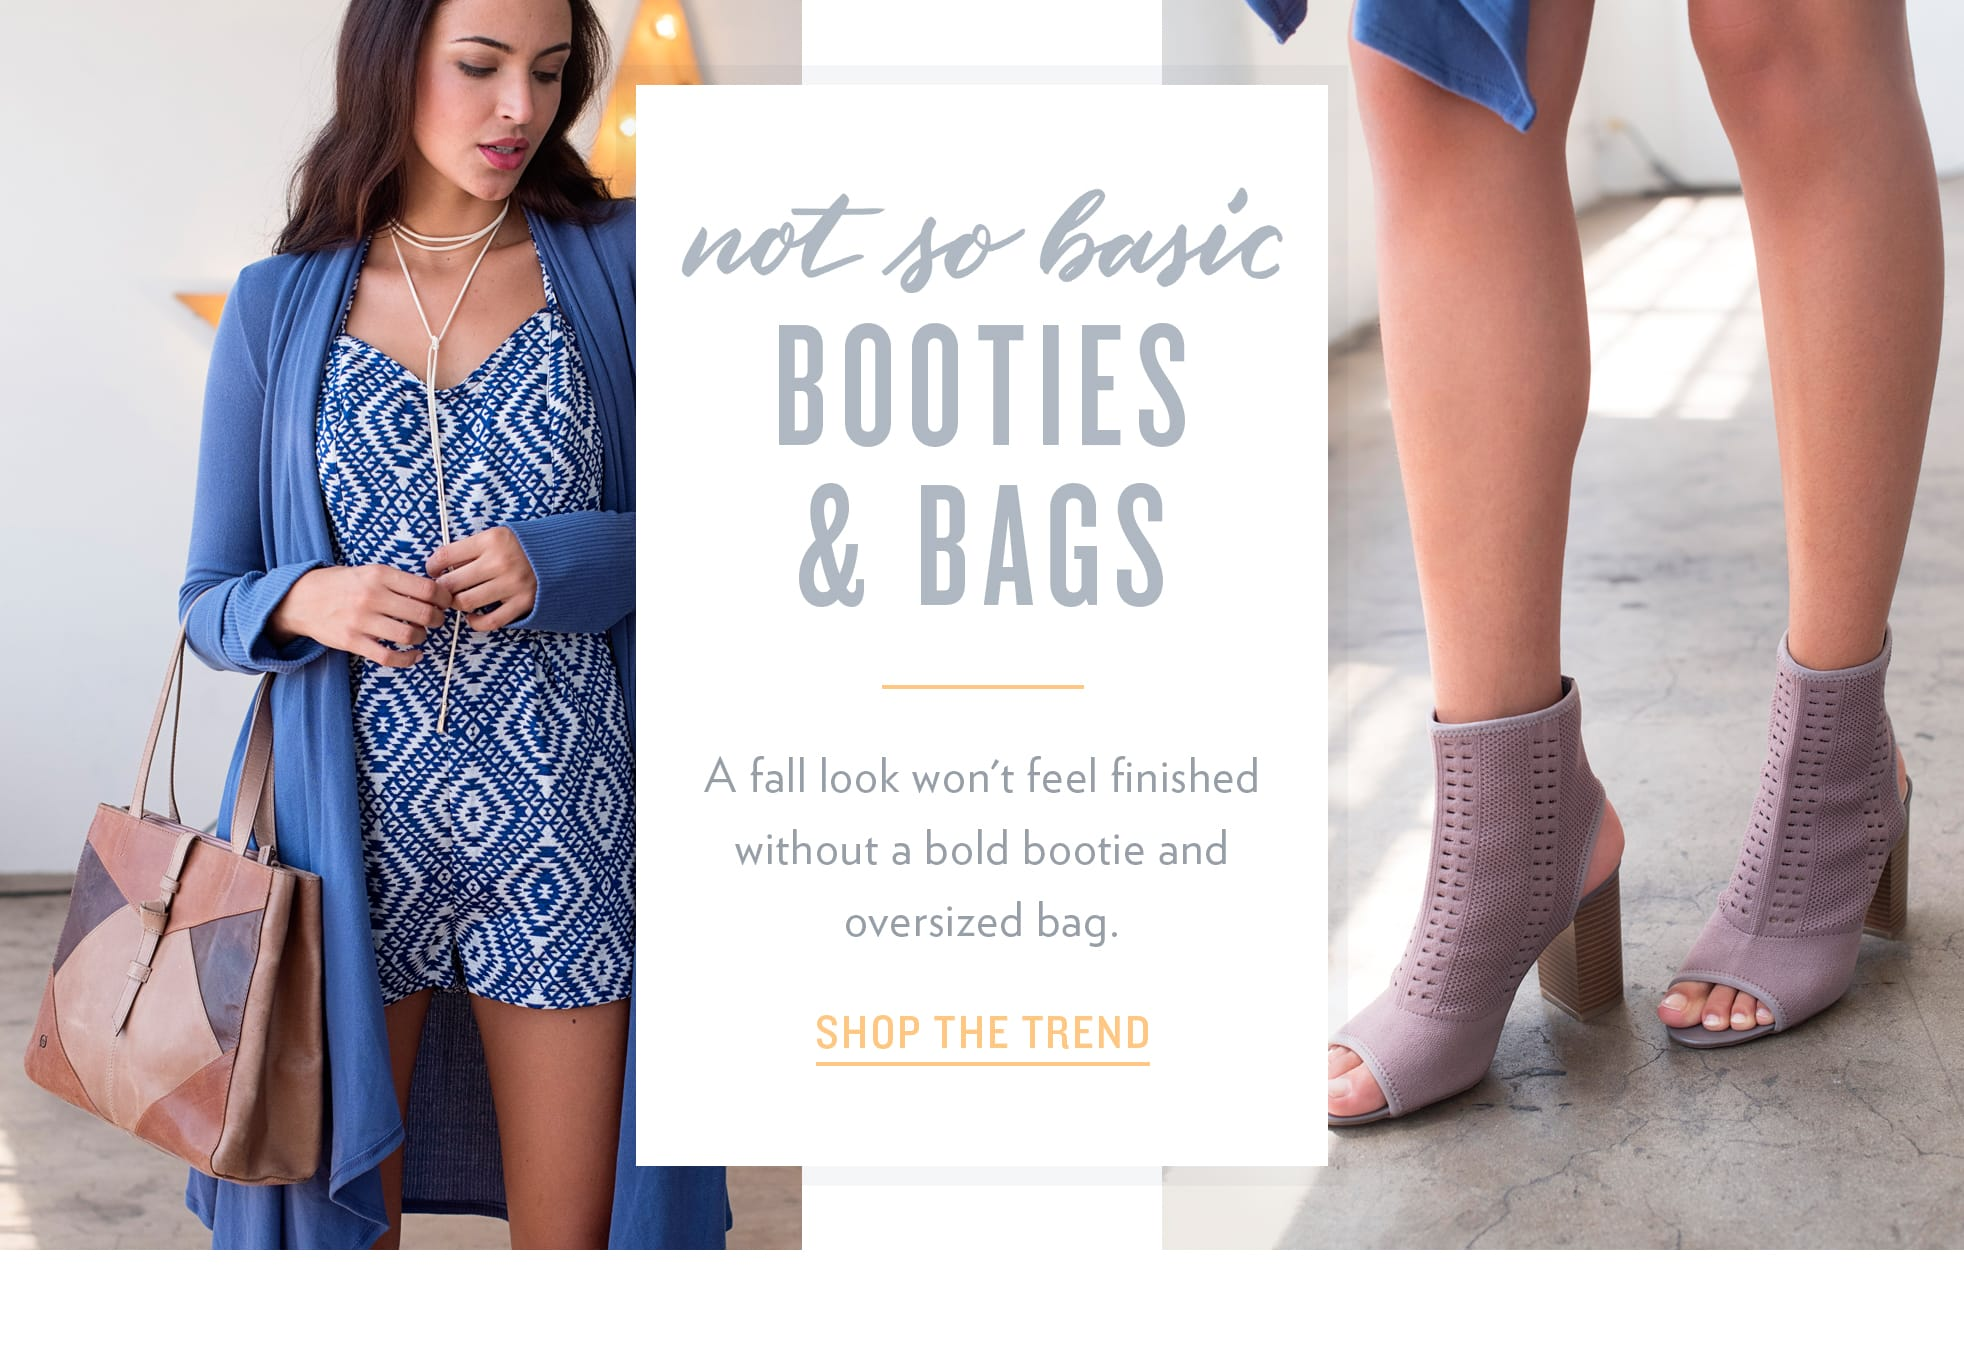 Fashion Trend: Not So Basic Booties & Bags